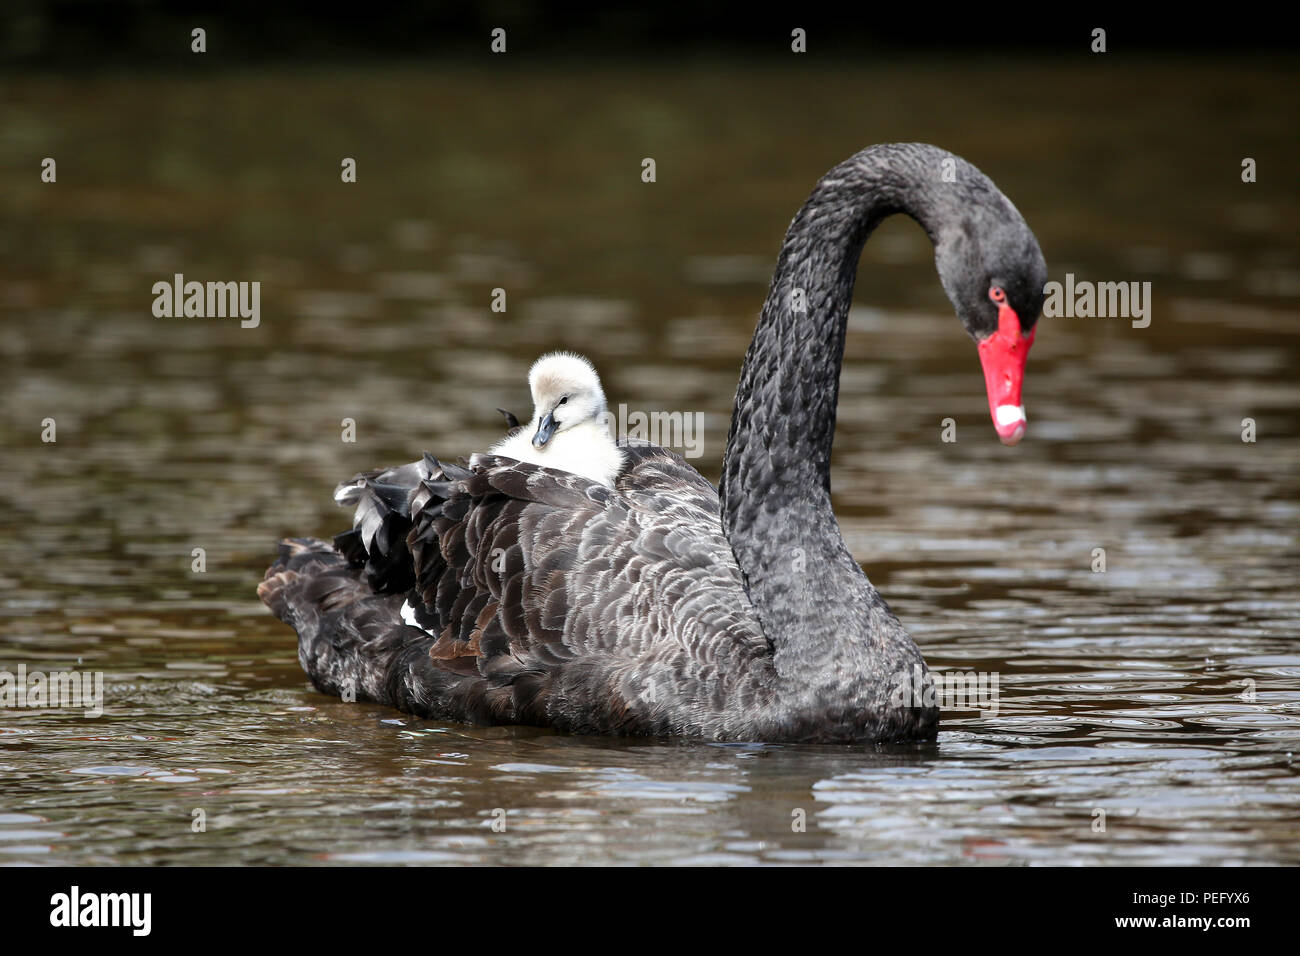 The last breeding pair of black swans in Dawlish, Devon, pictured with two new born cygnets. - Stock Image